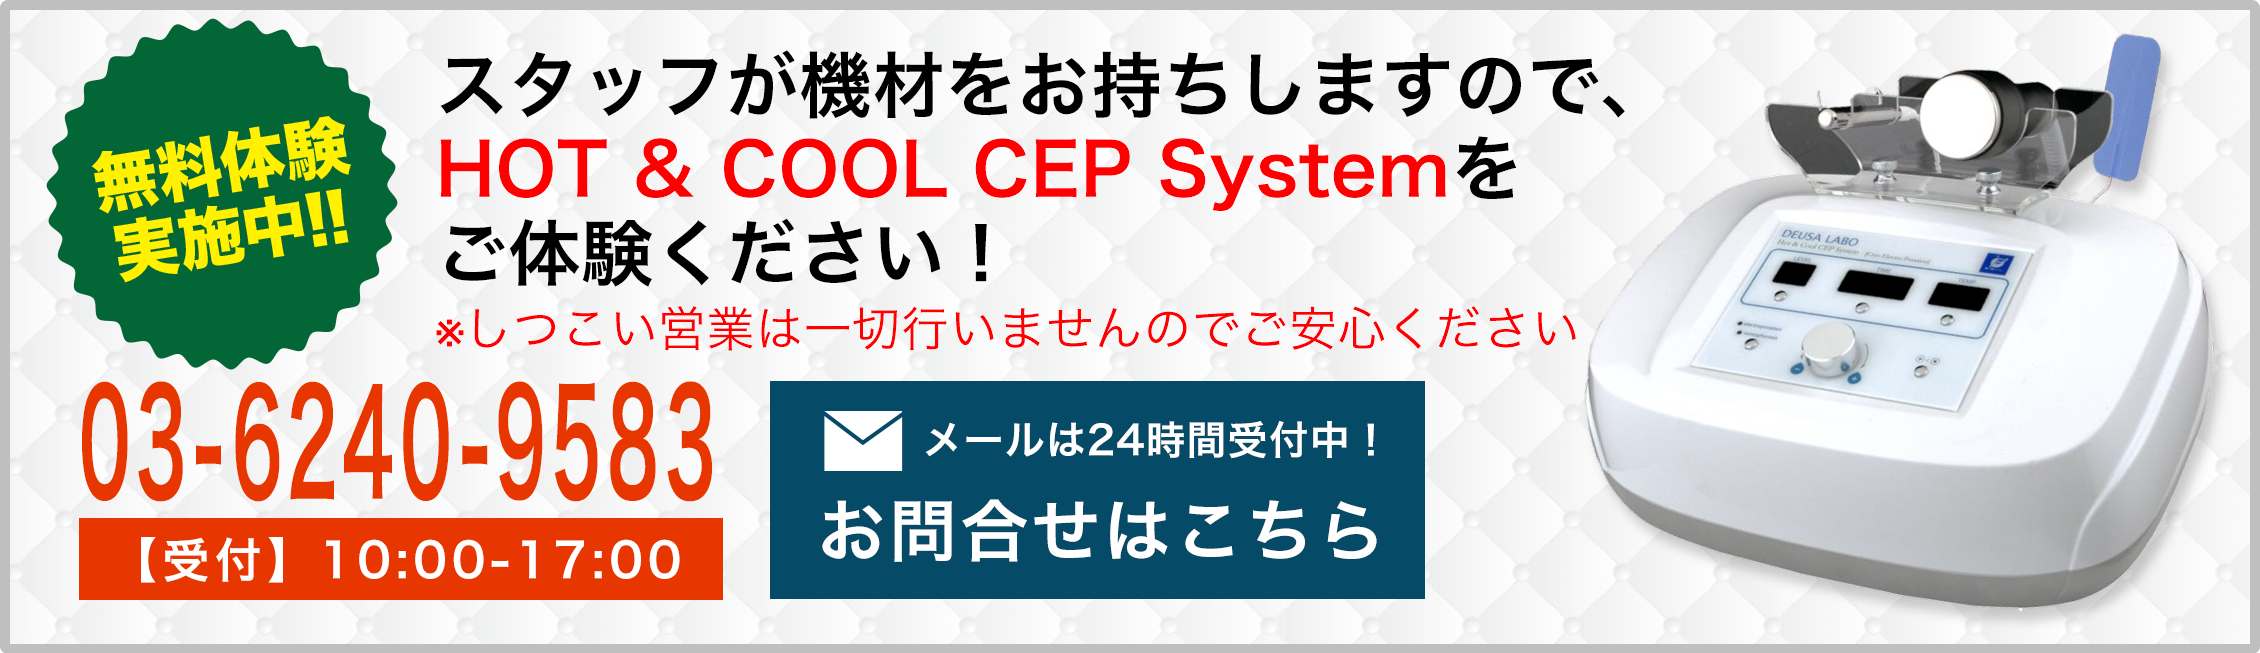 HOT & COOL CEP System